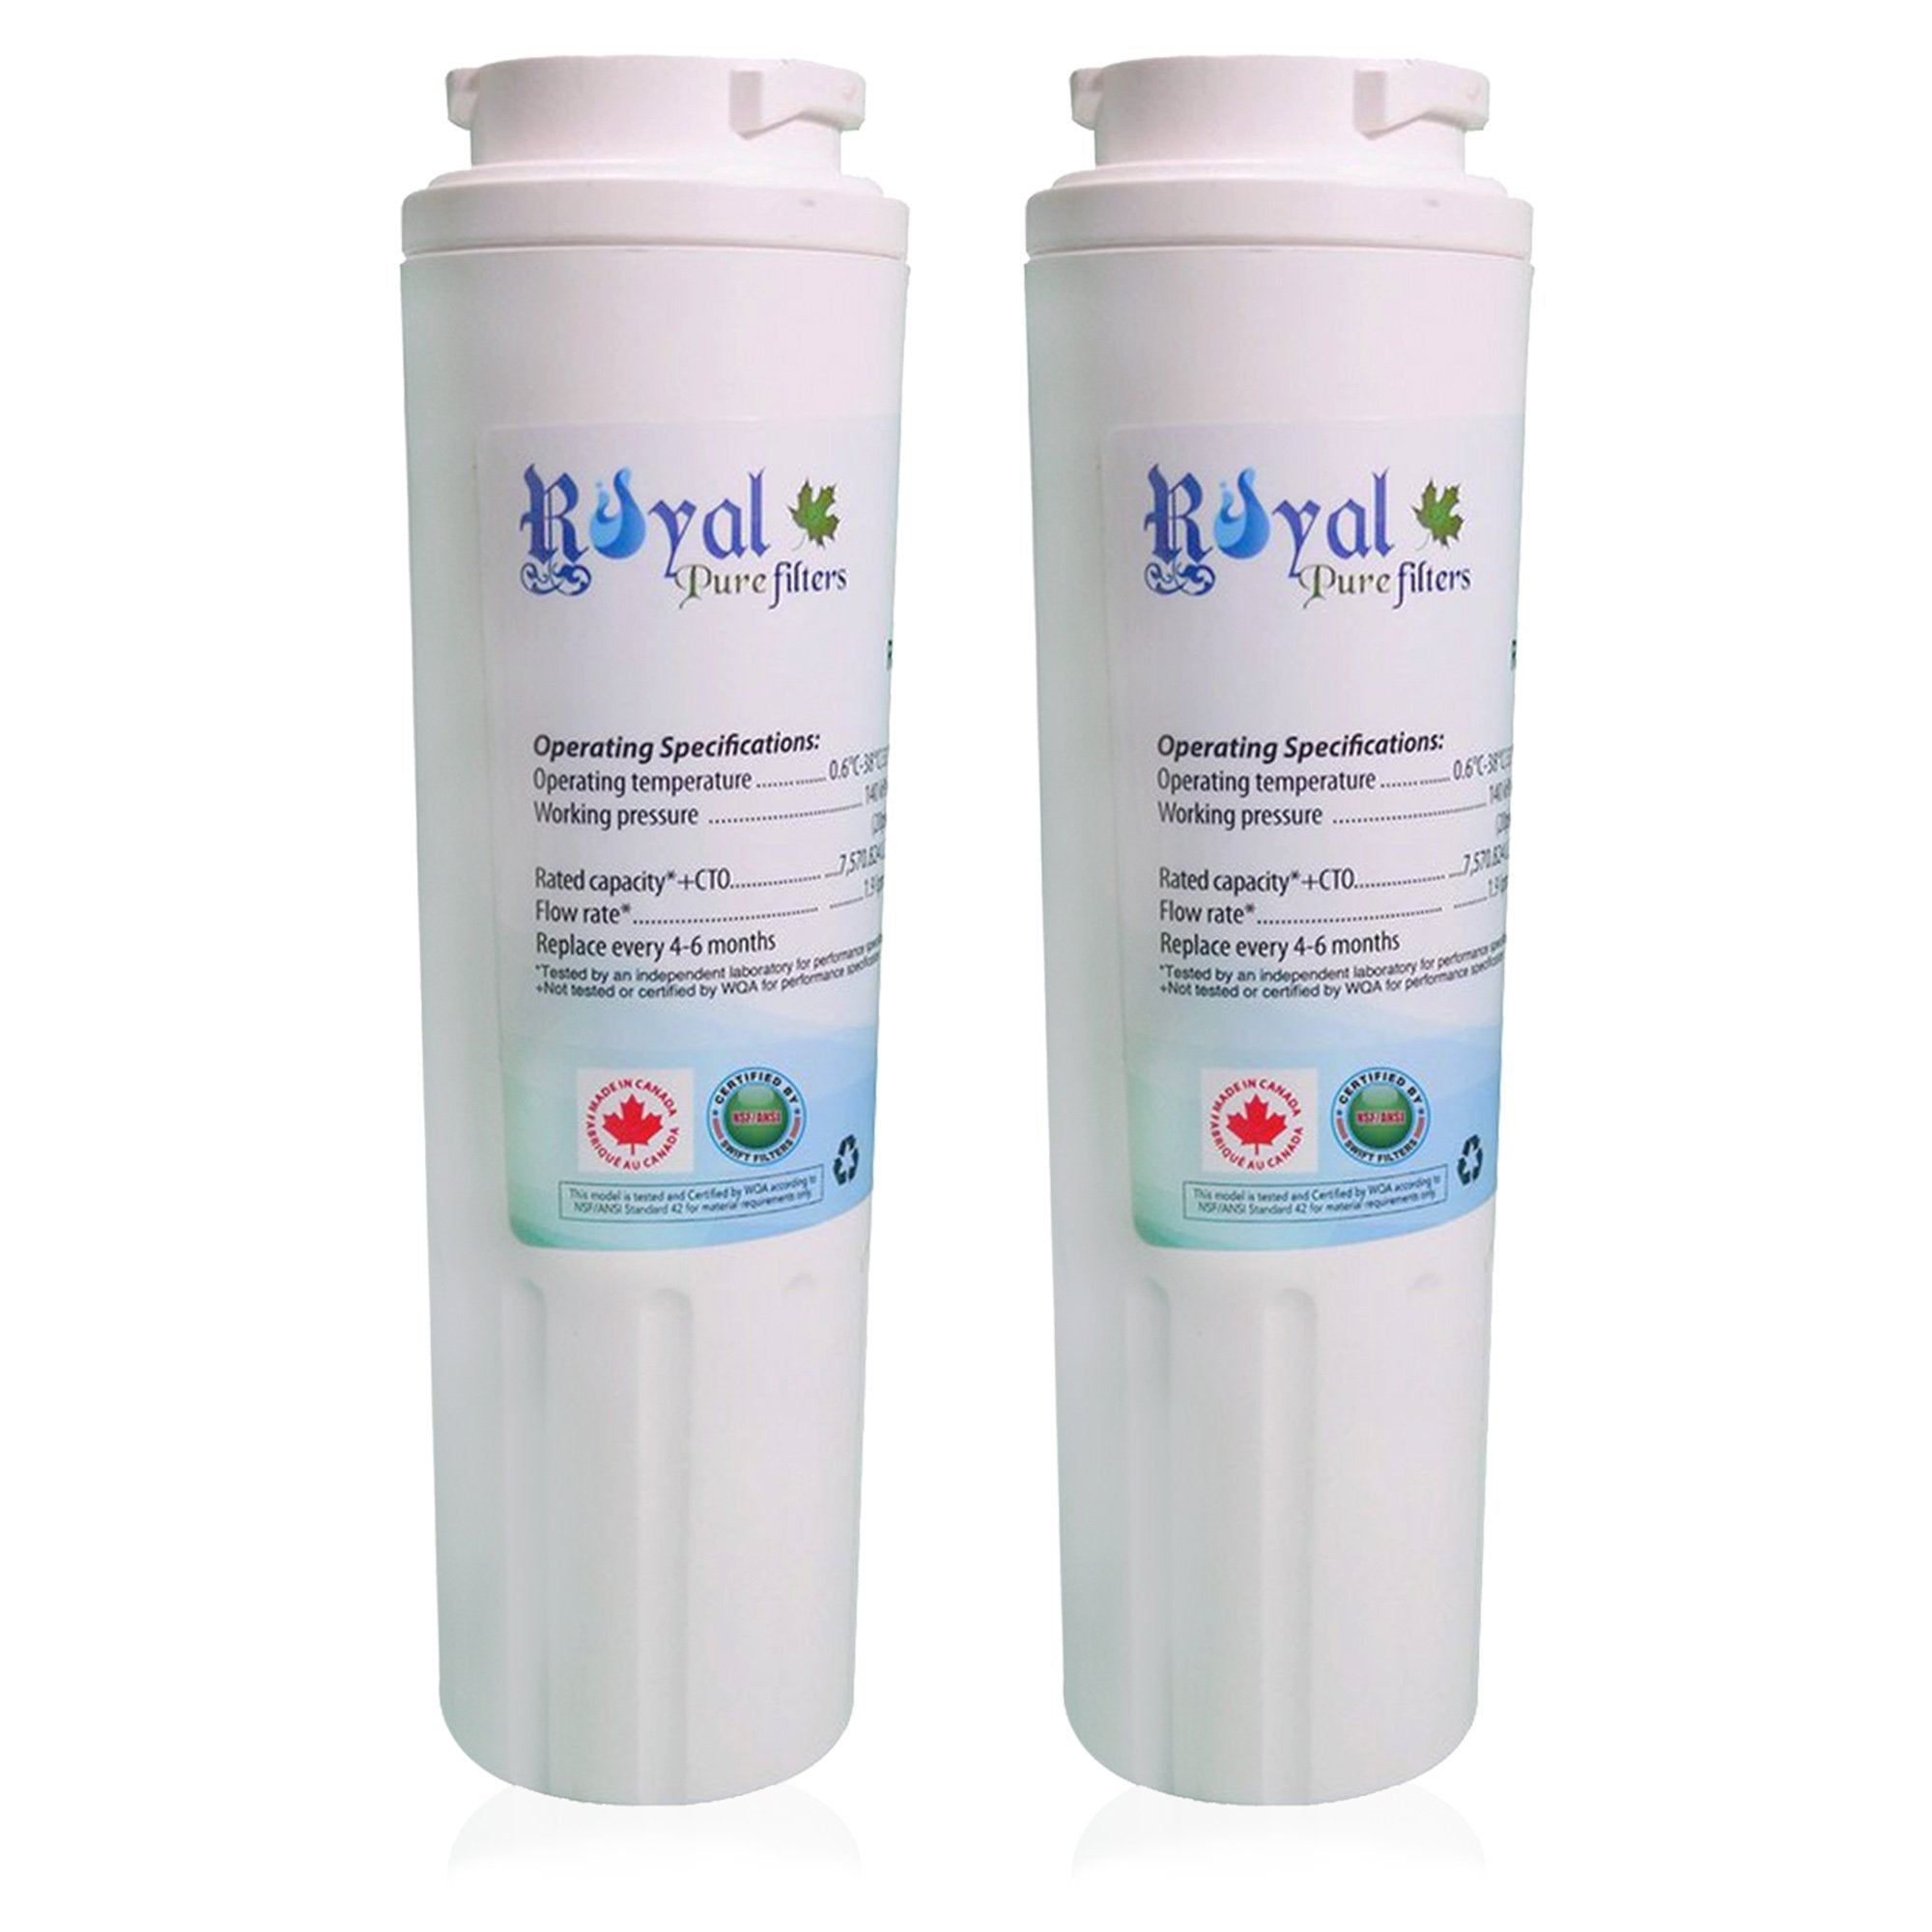 EveryDrop EDR4RXD1, Maytag Ukf8001 & Whirlpool 4396395 Compatible CTO Refrigerator Water Filter 2 paCK